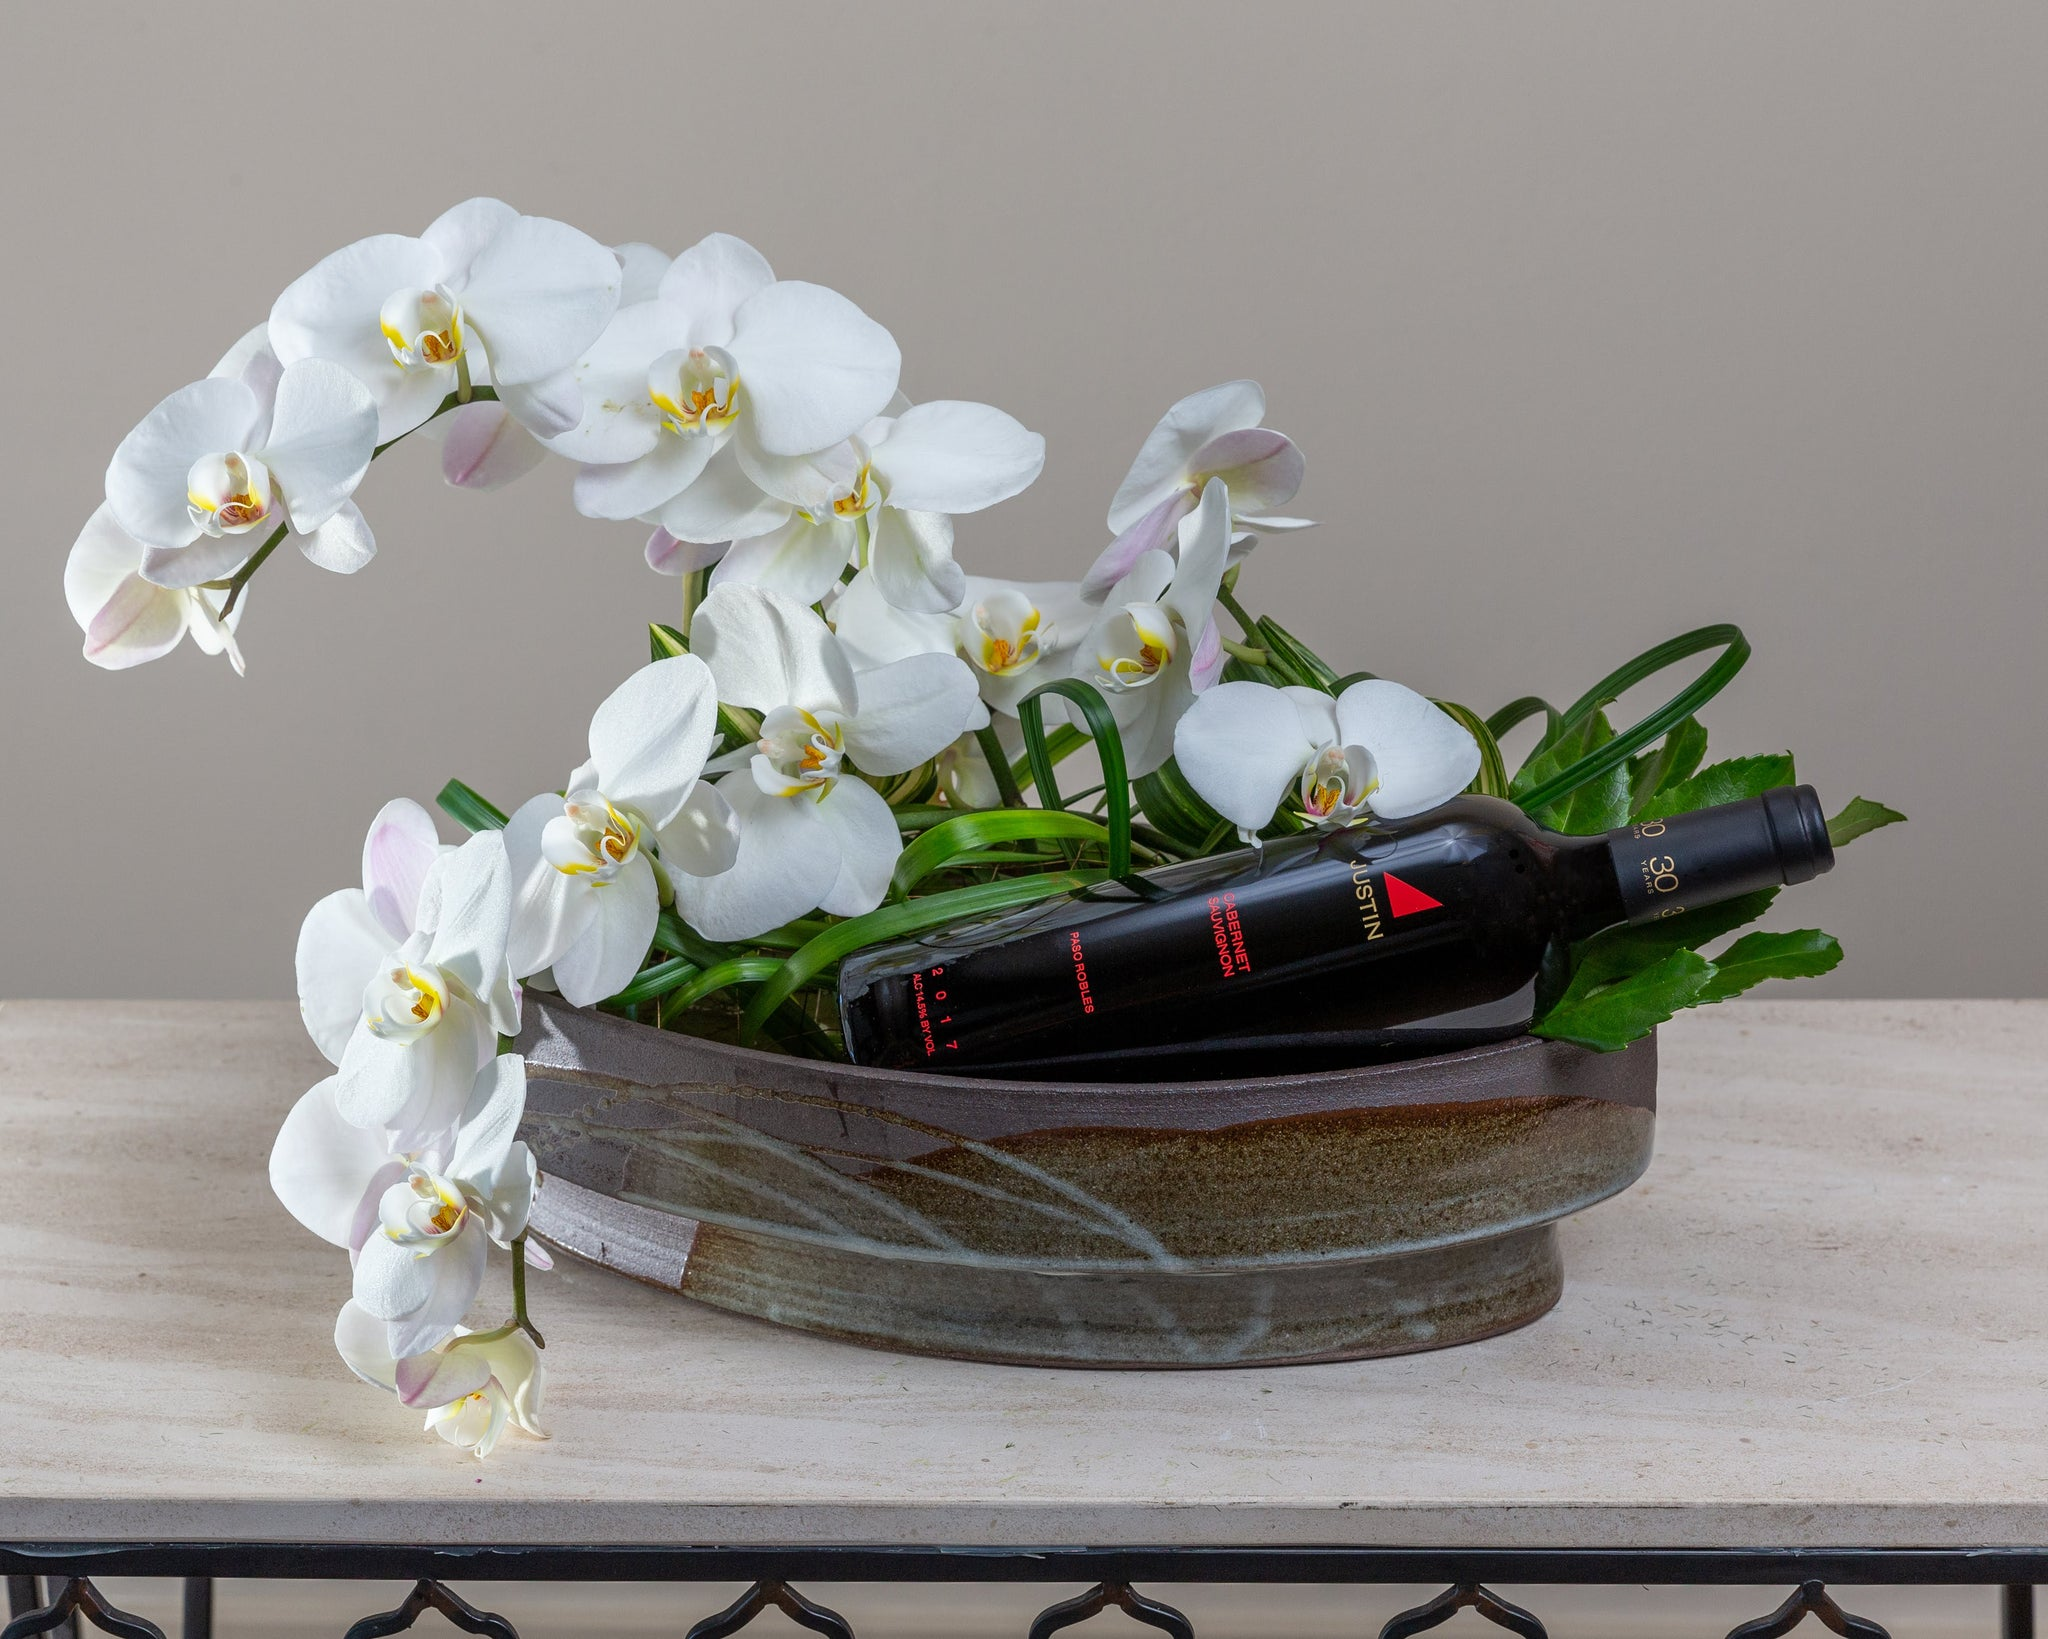 Orchids & foliage, Arakawa designer container, complimentary bottle of wine